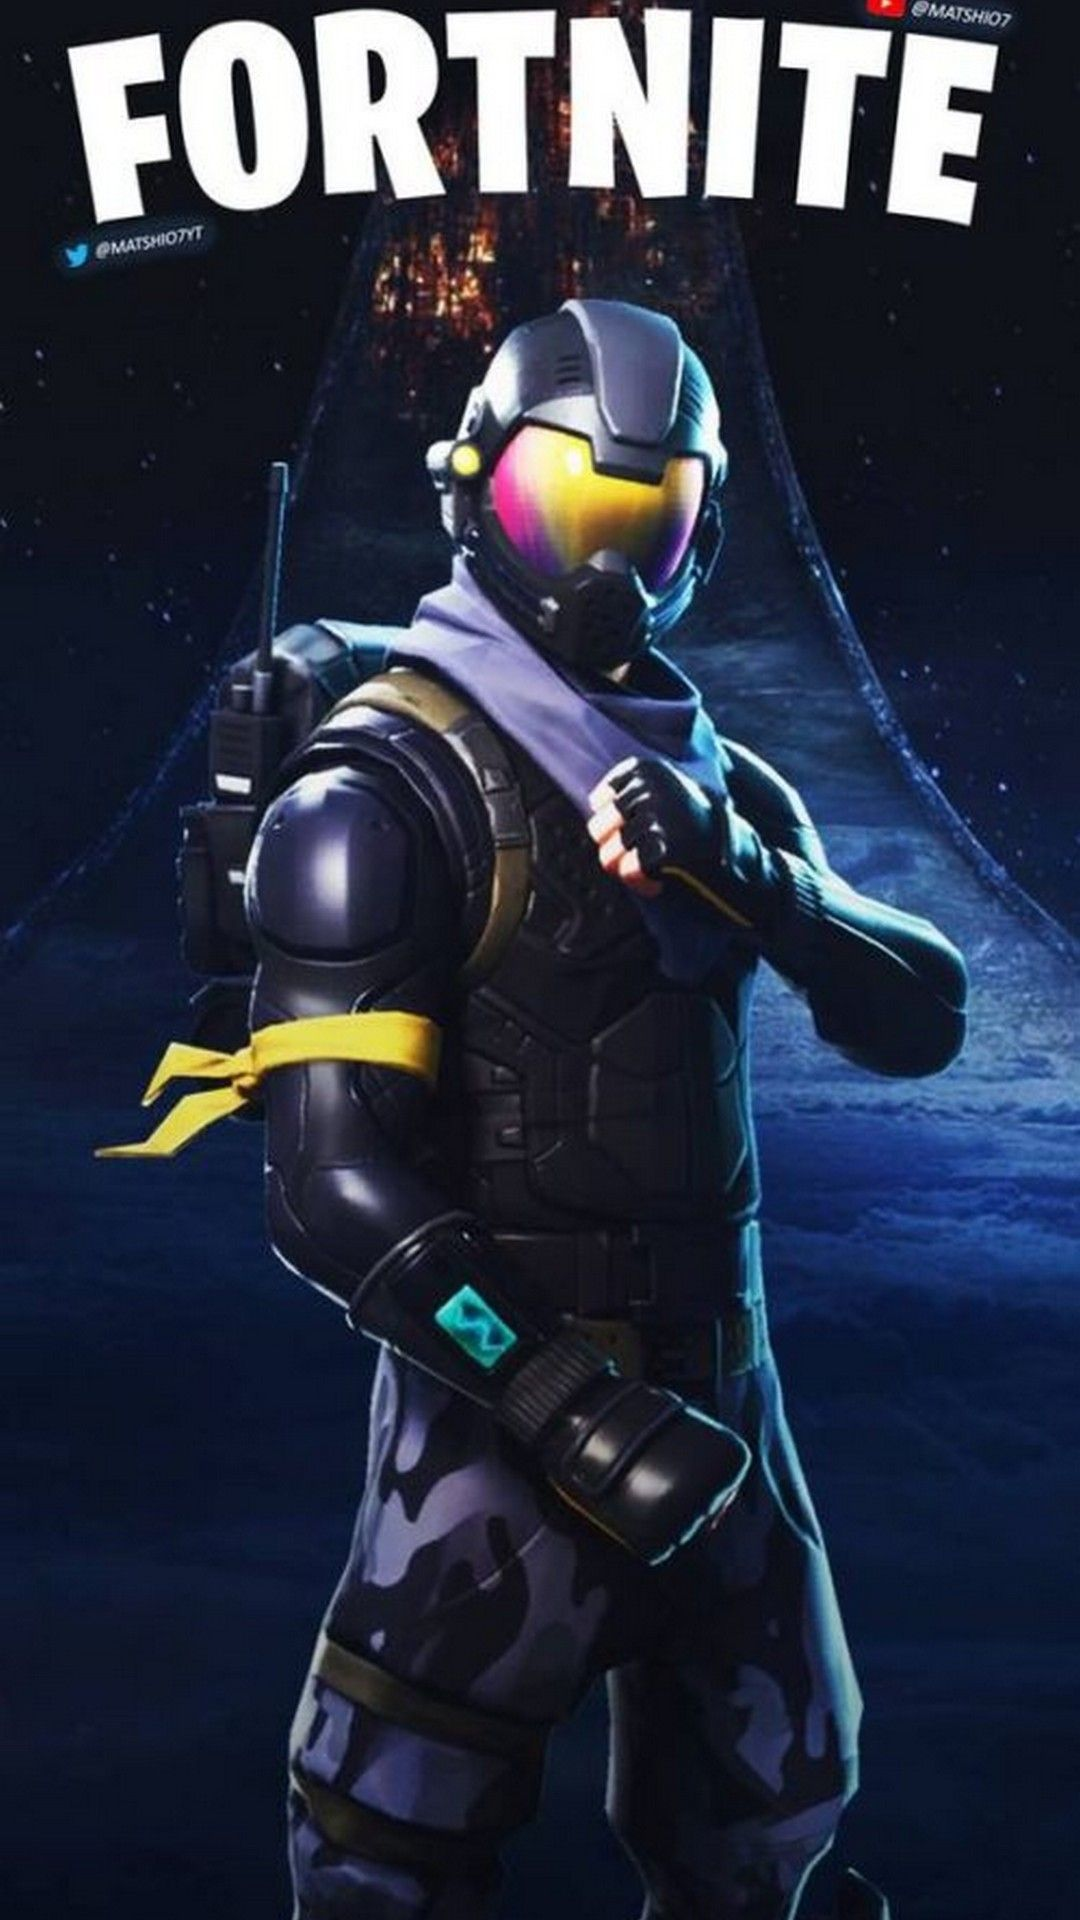 Fortnite Iphone Wallpaper Hd Wallpaper Android Android